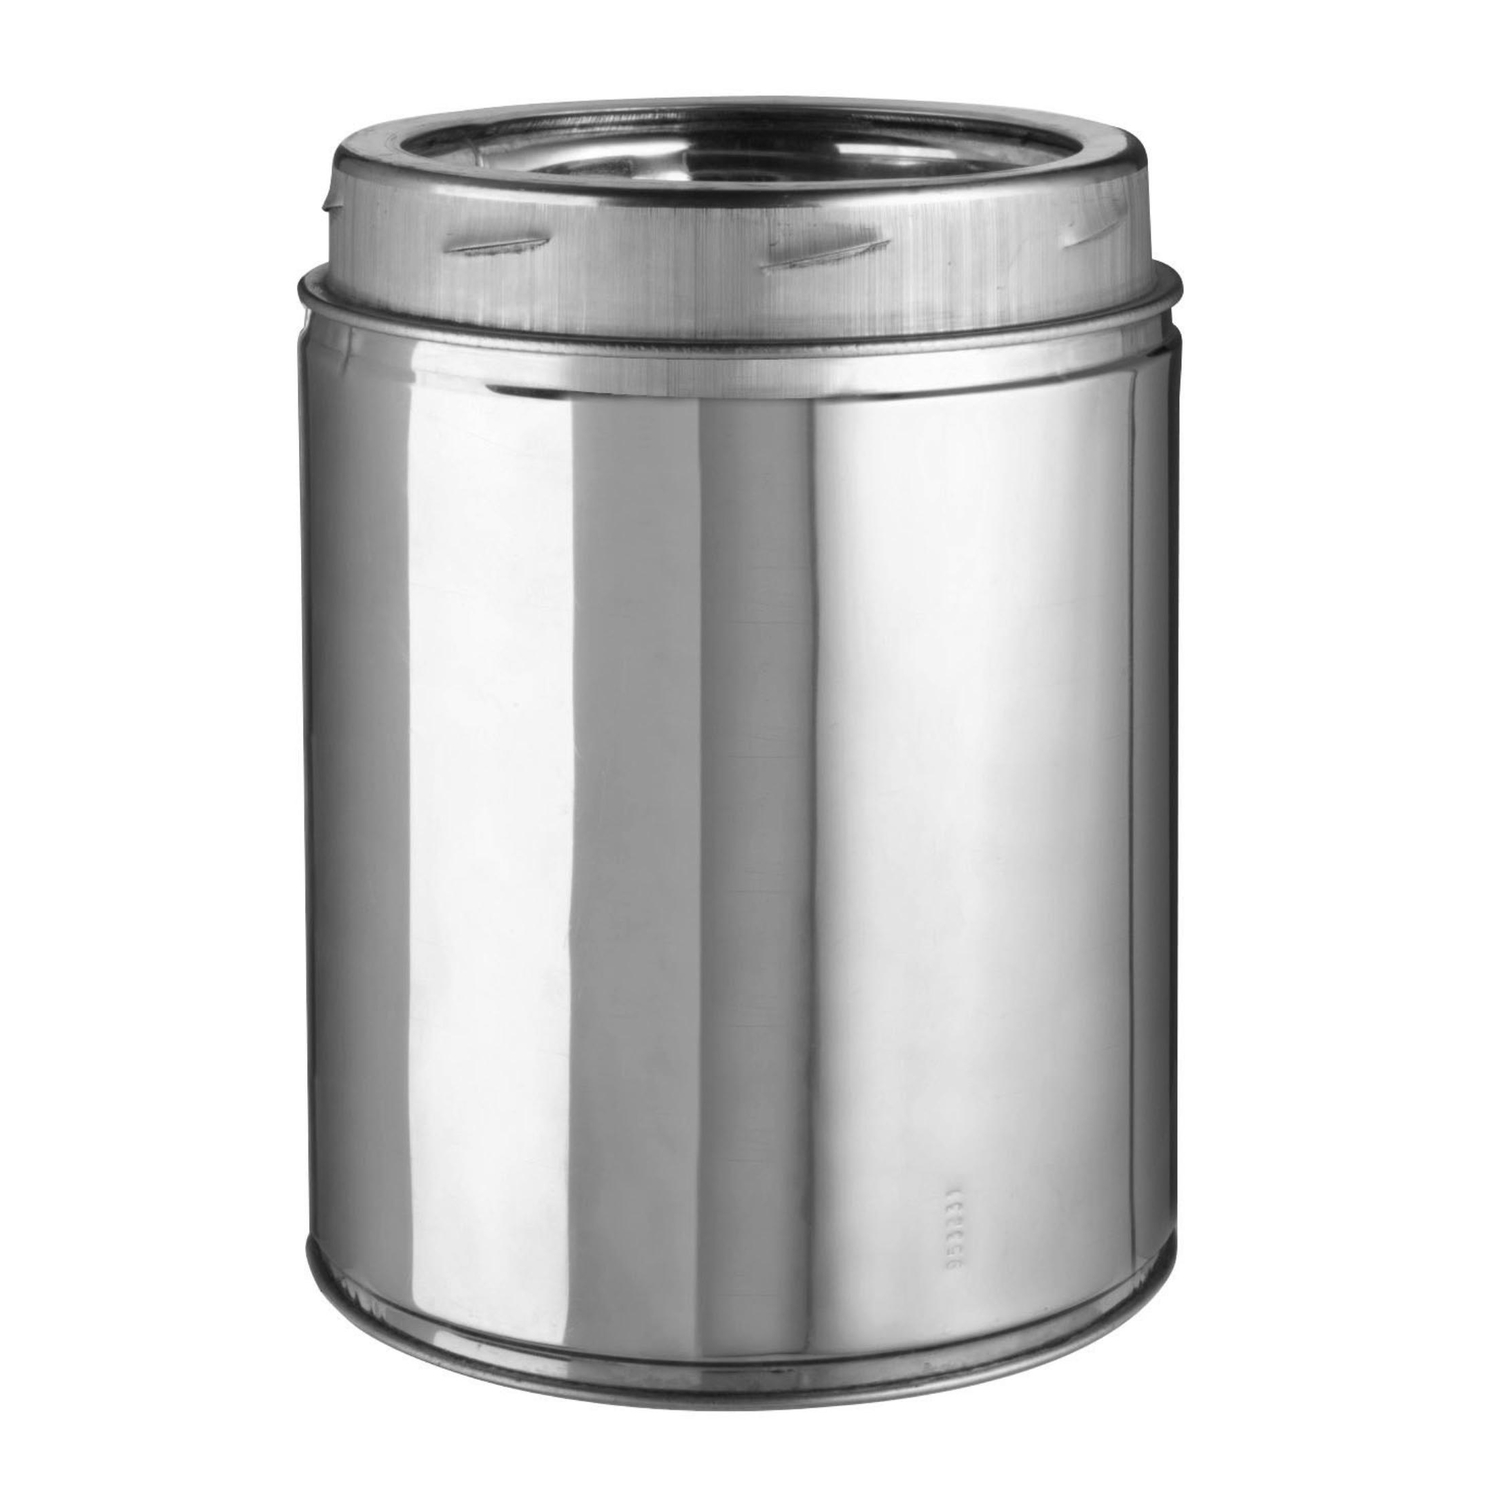 Selkirk  8 in. Dia. x 12 in. L Stainless Steel  Chimney Pipe